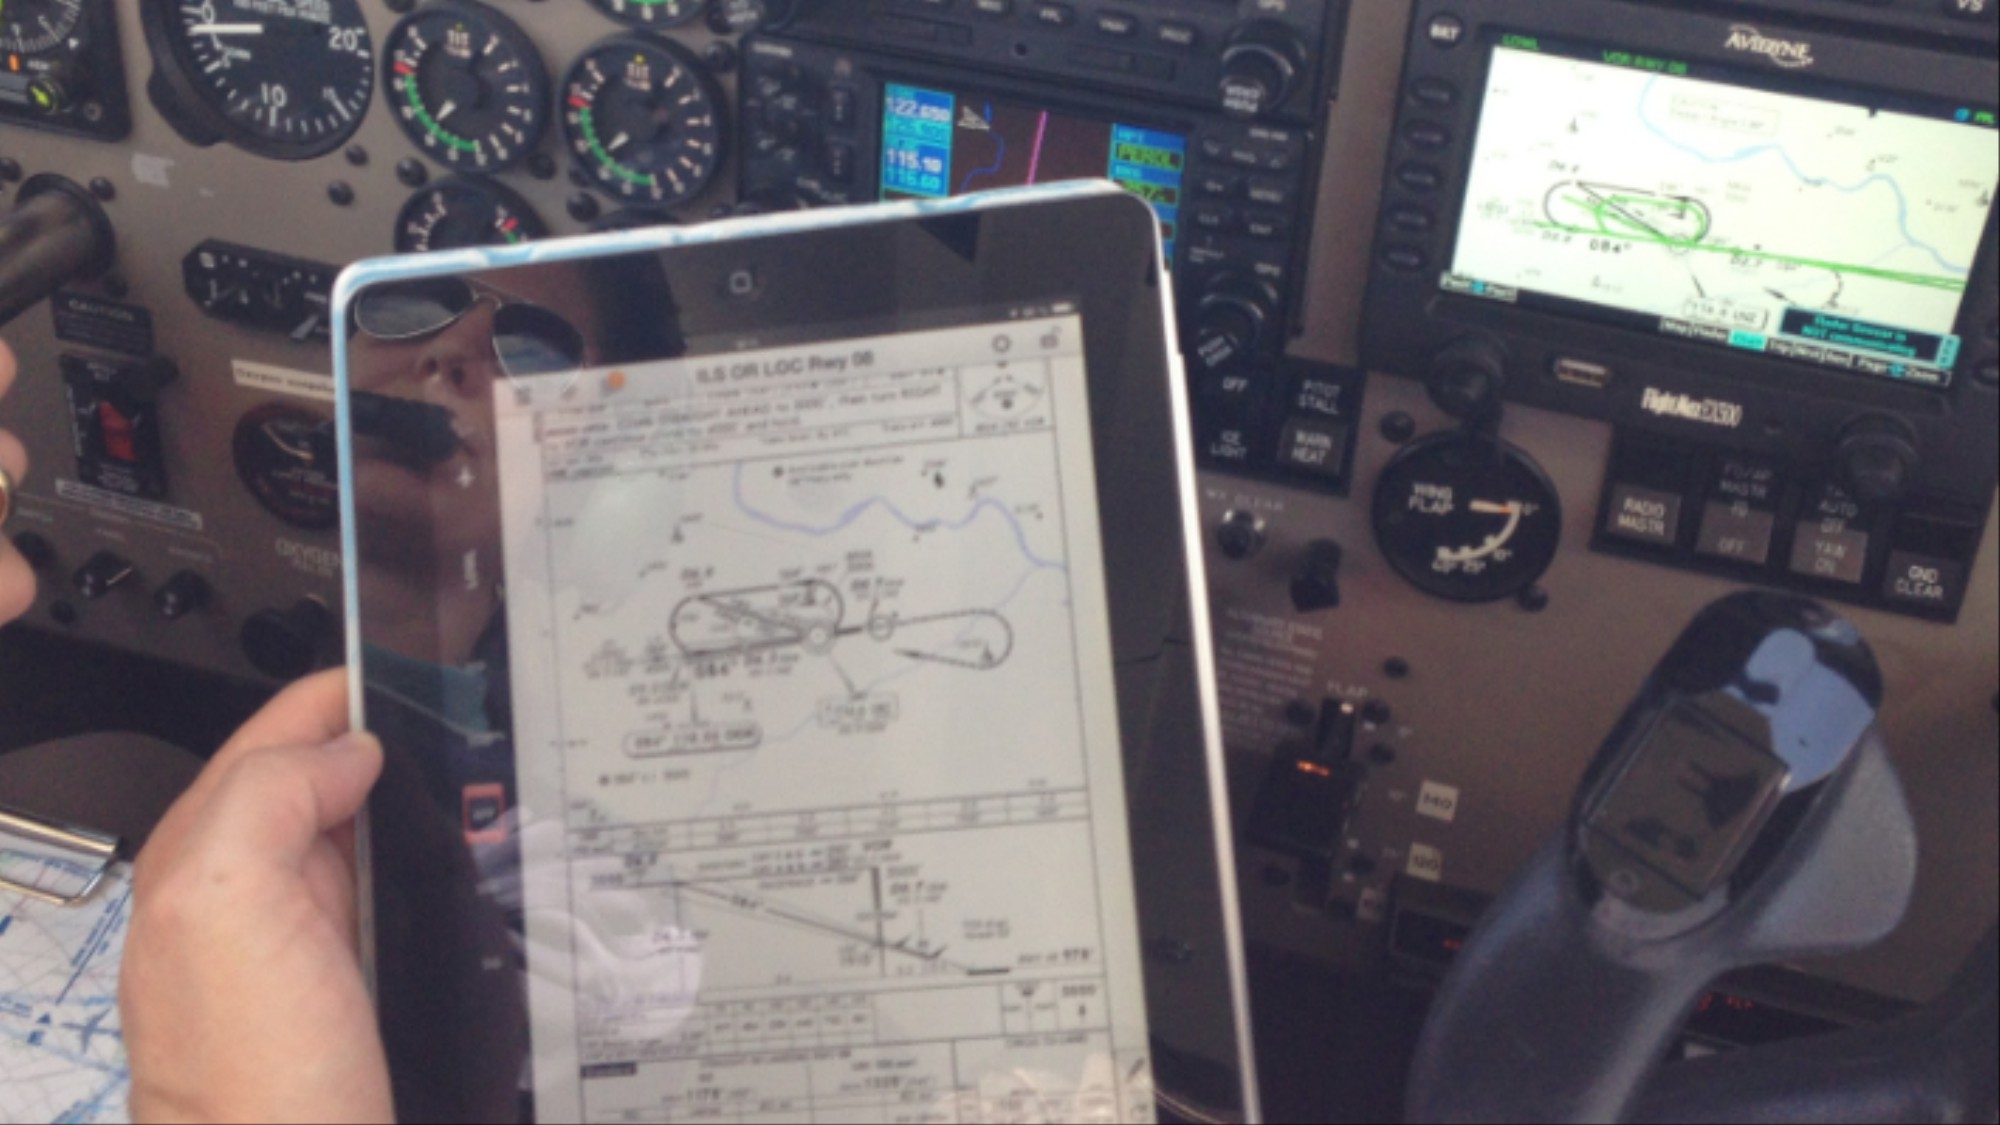 Pilots Love These Navigation Apps  Too Bad They Can Be Hacked - VICE